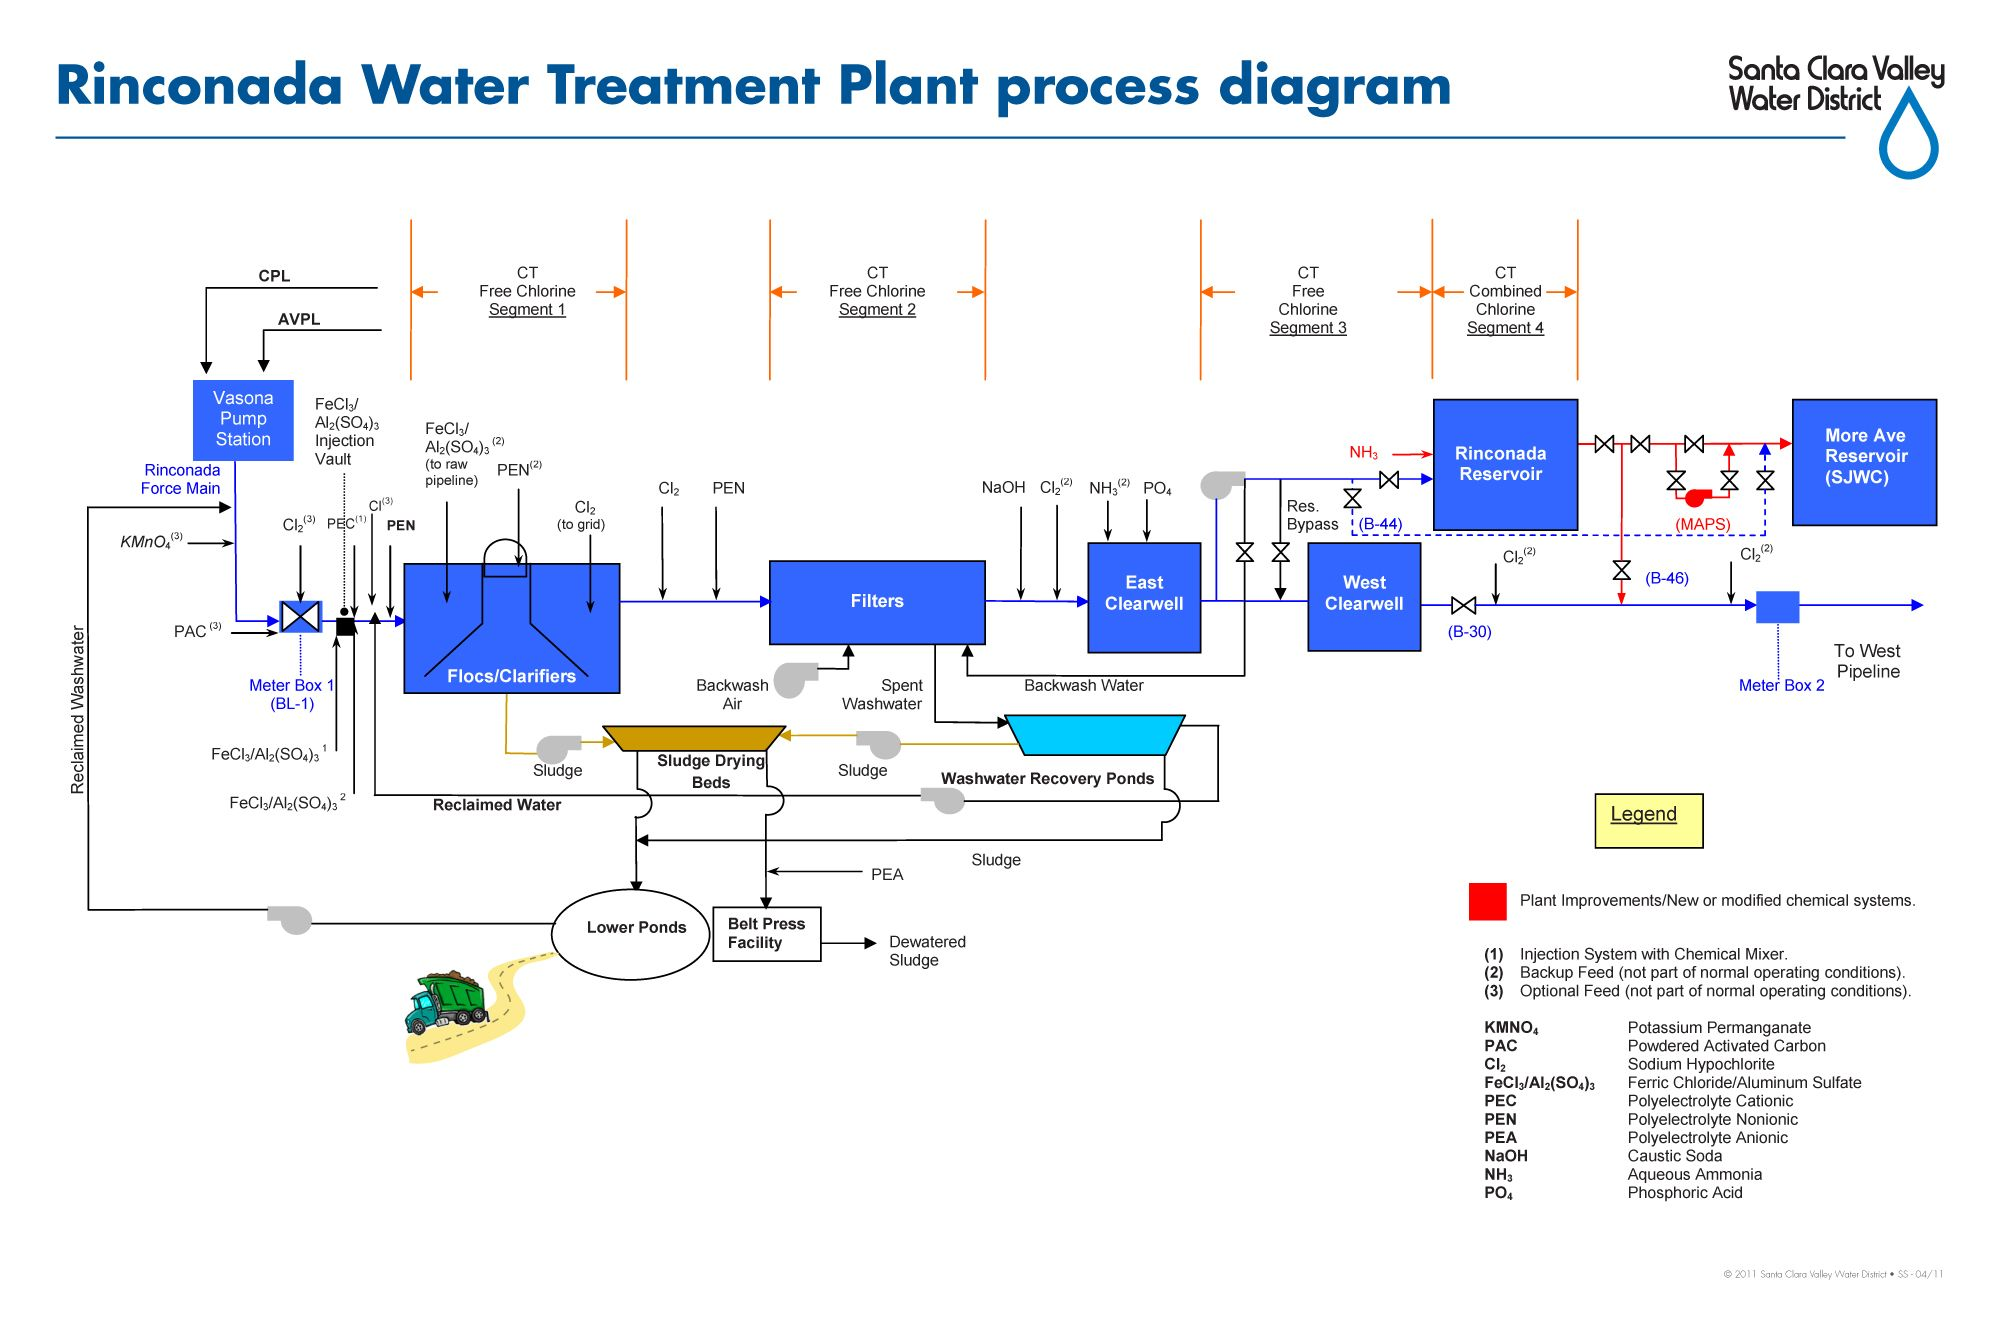 medium resolution of rinconada water treatment plant process diagram water treatment rh pinterest com diagram of distilled water plant diagram of a water leaf plant